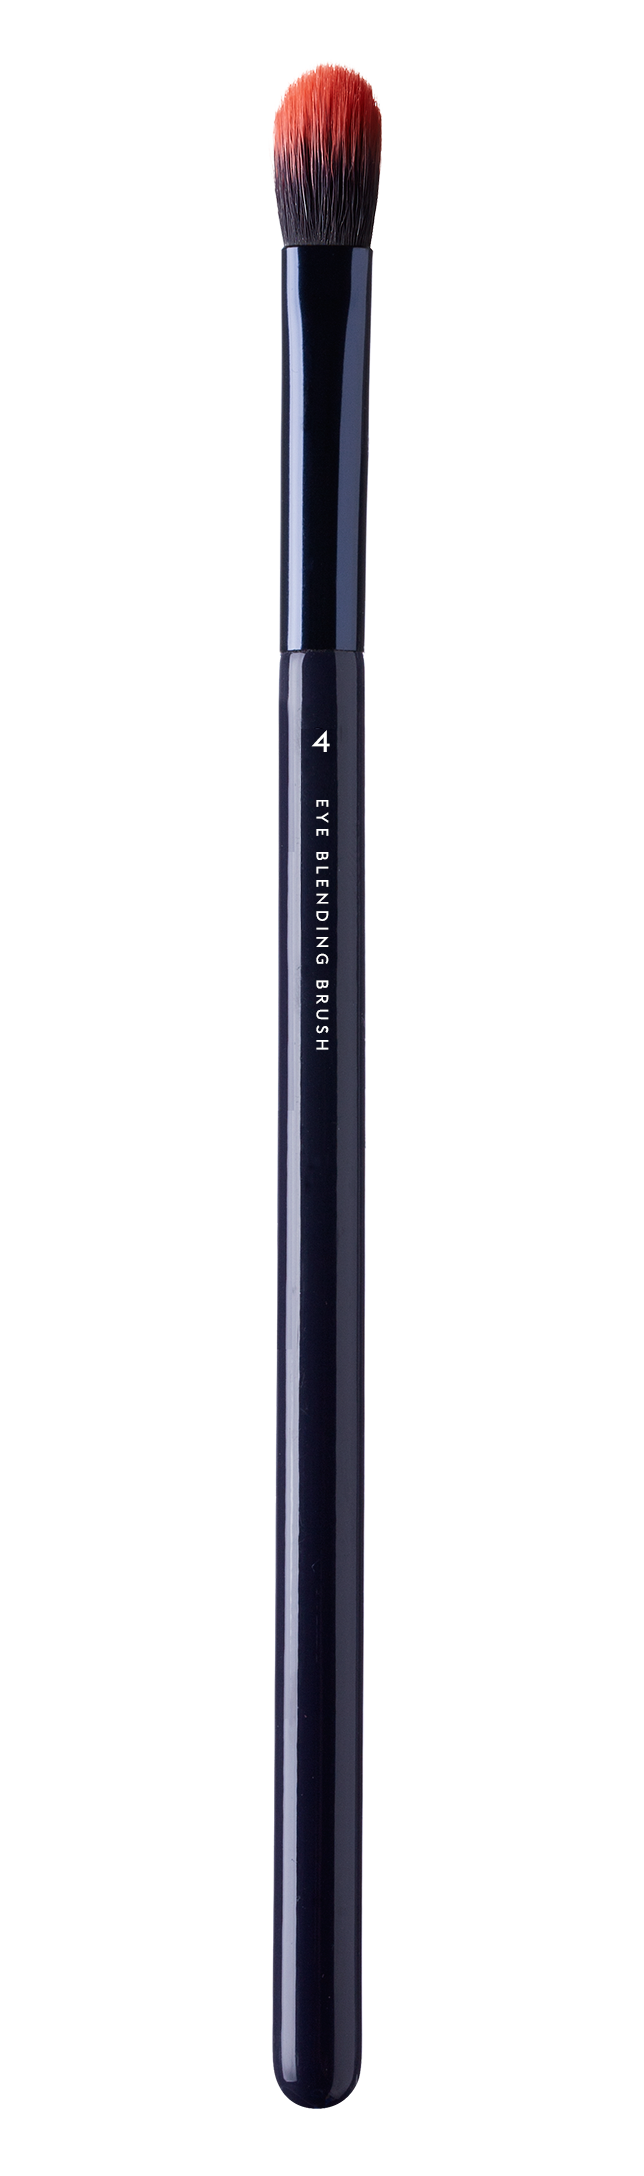 EYE BLENDING BRUSH - Pennello per sfumare gli ombretti